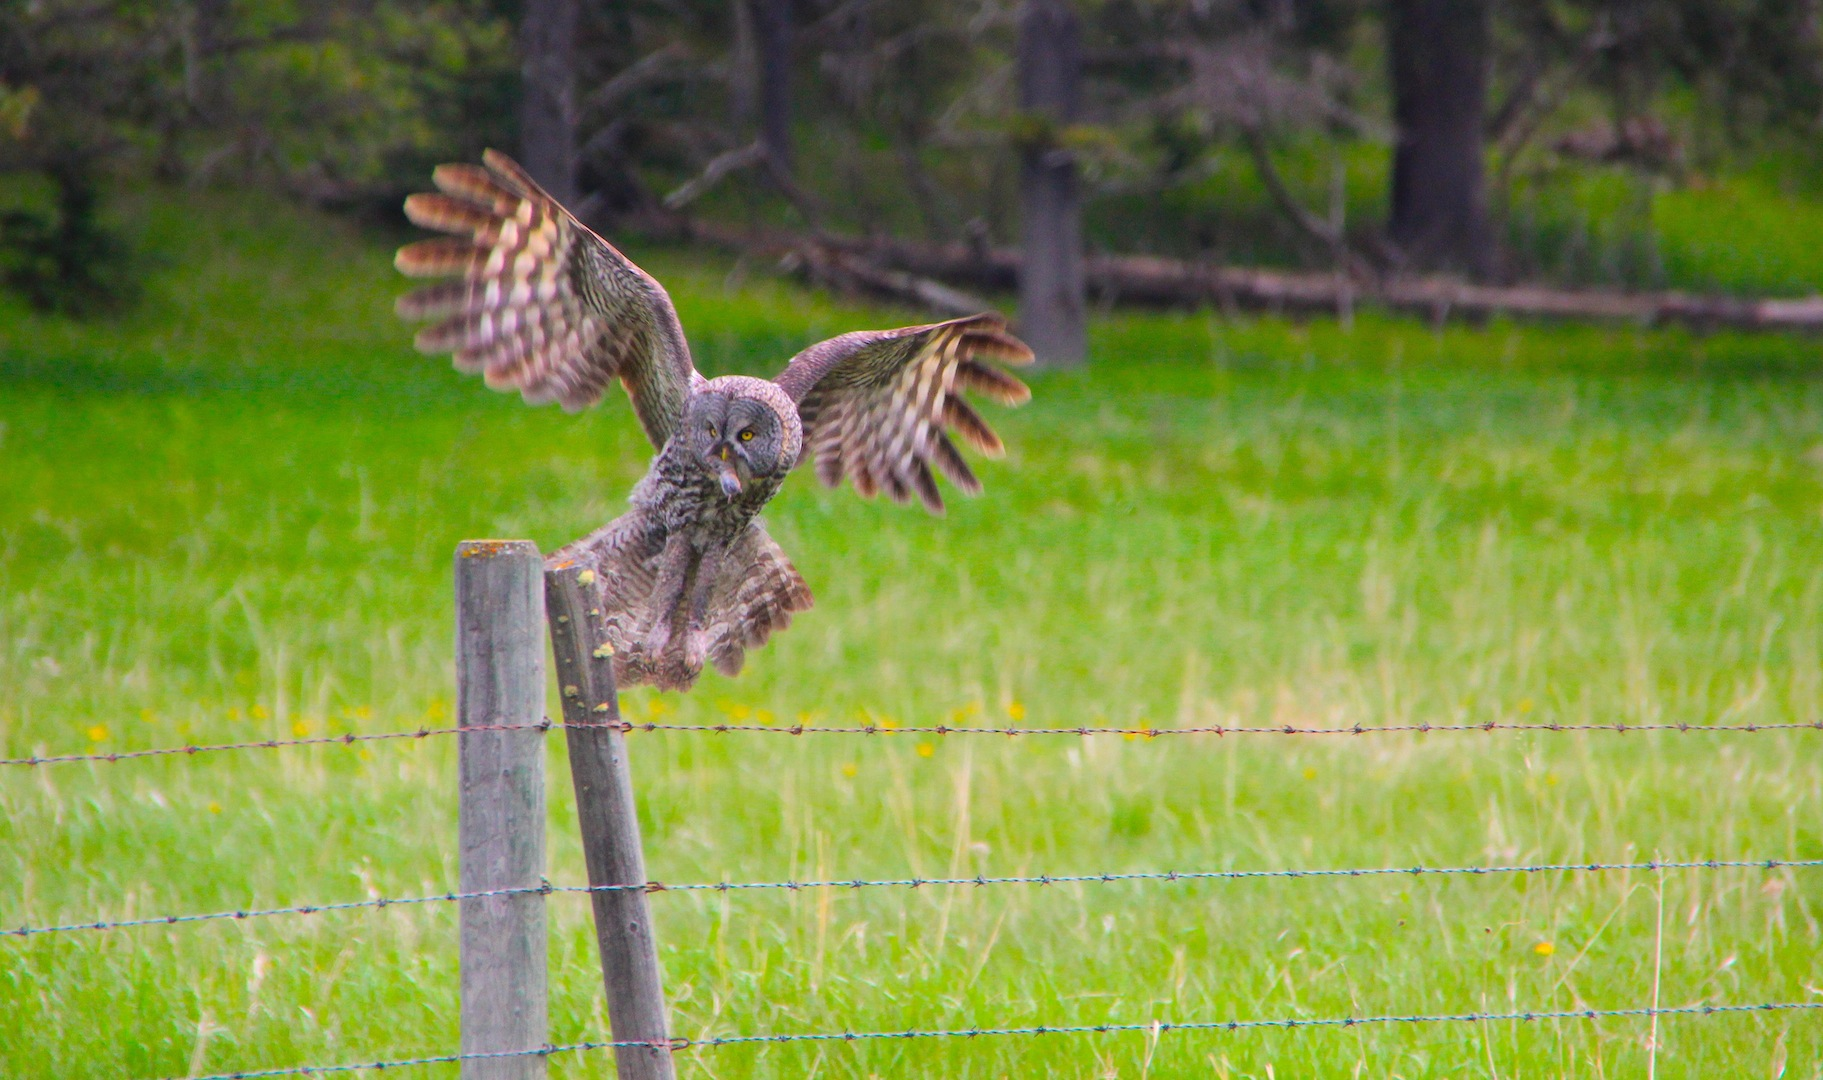 009 - Great Grey Owl